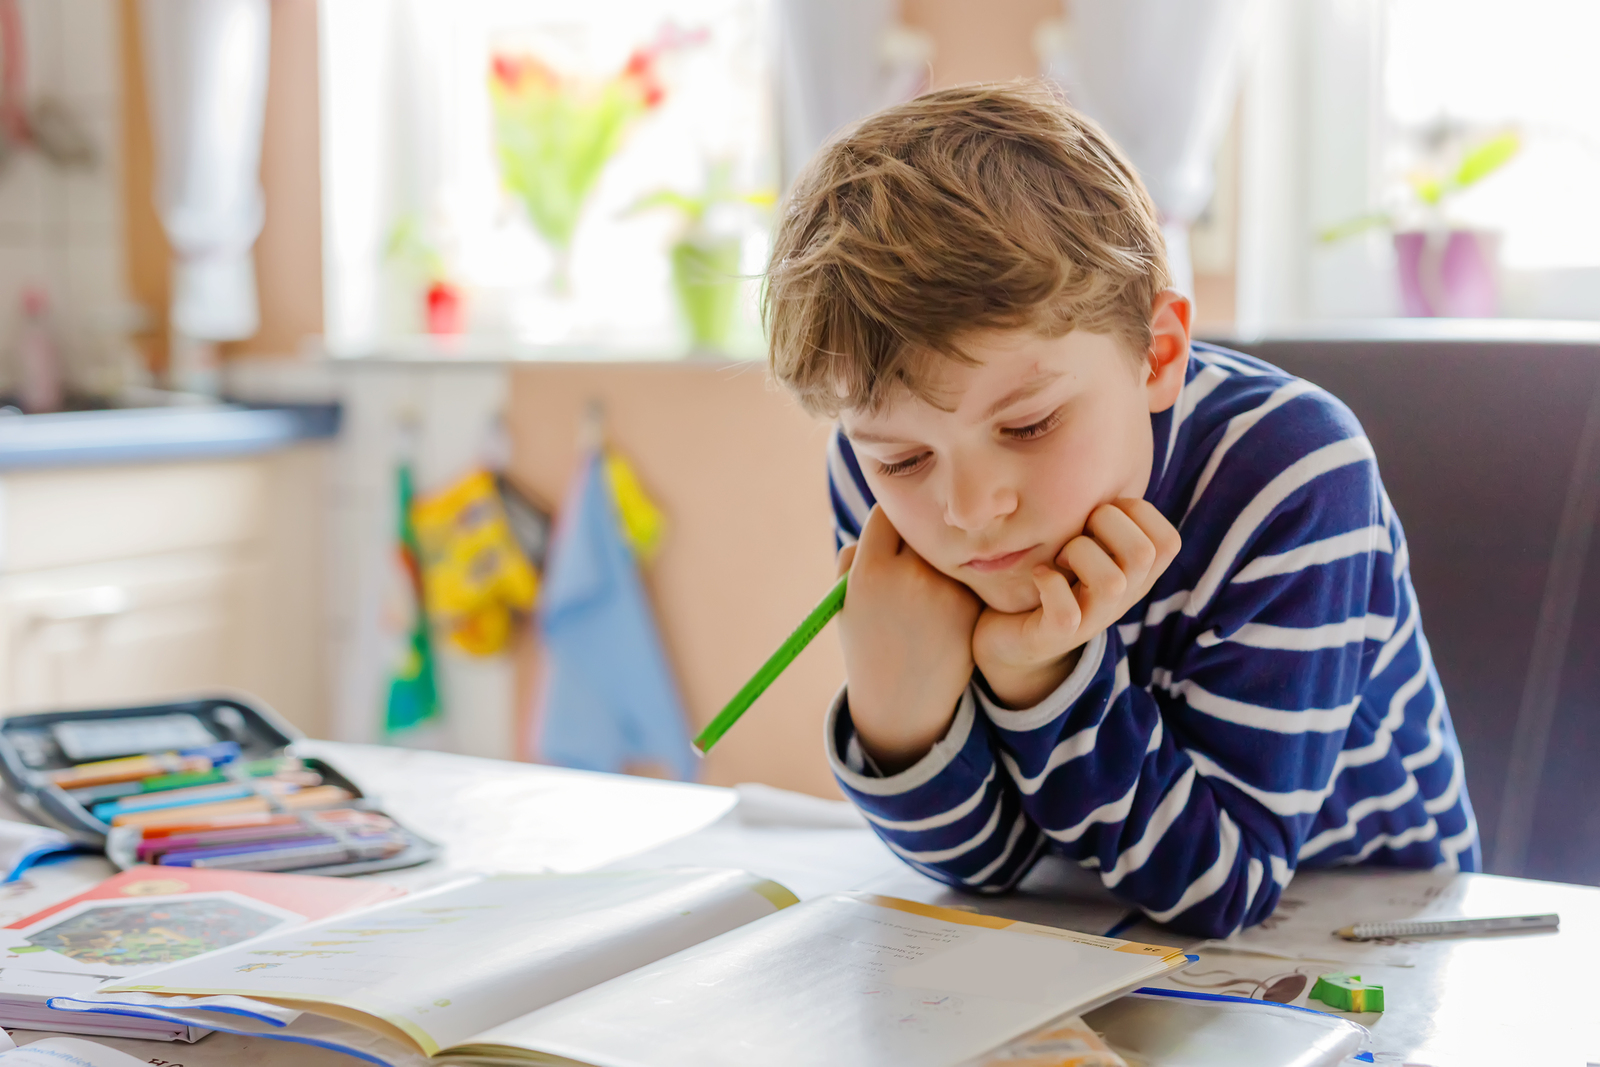 A curious child reviews the open book in front of them. This could represent why psychoeducational testing in Tampa, FL could benefit kids academically. Learn more about psychoeducation testing in Wesley Chapel, FL.